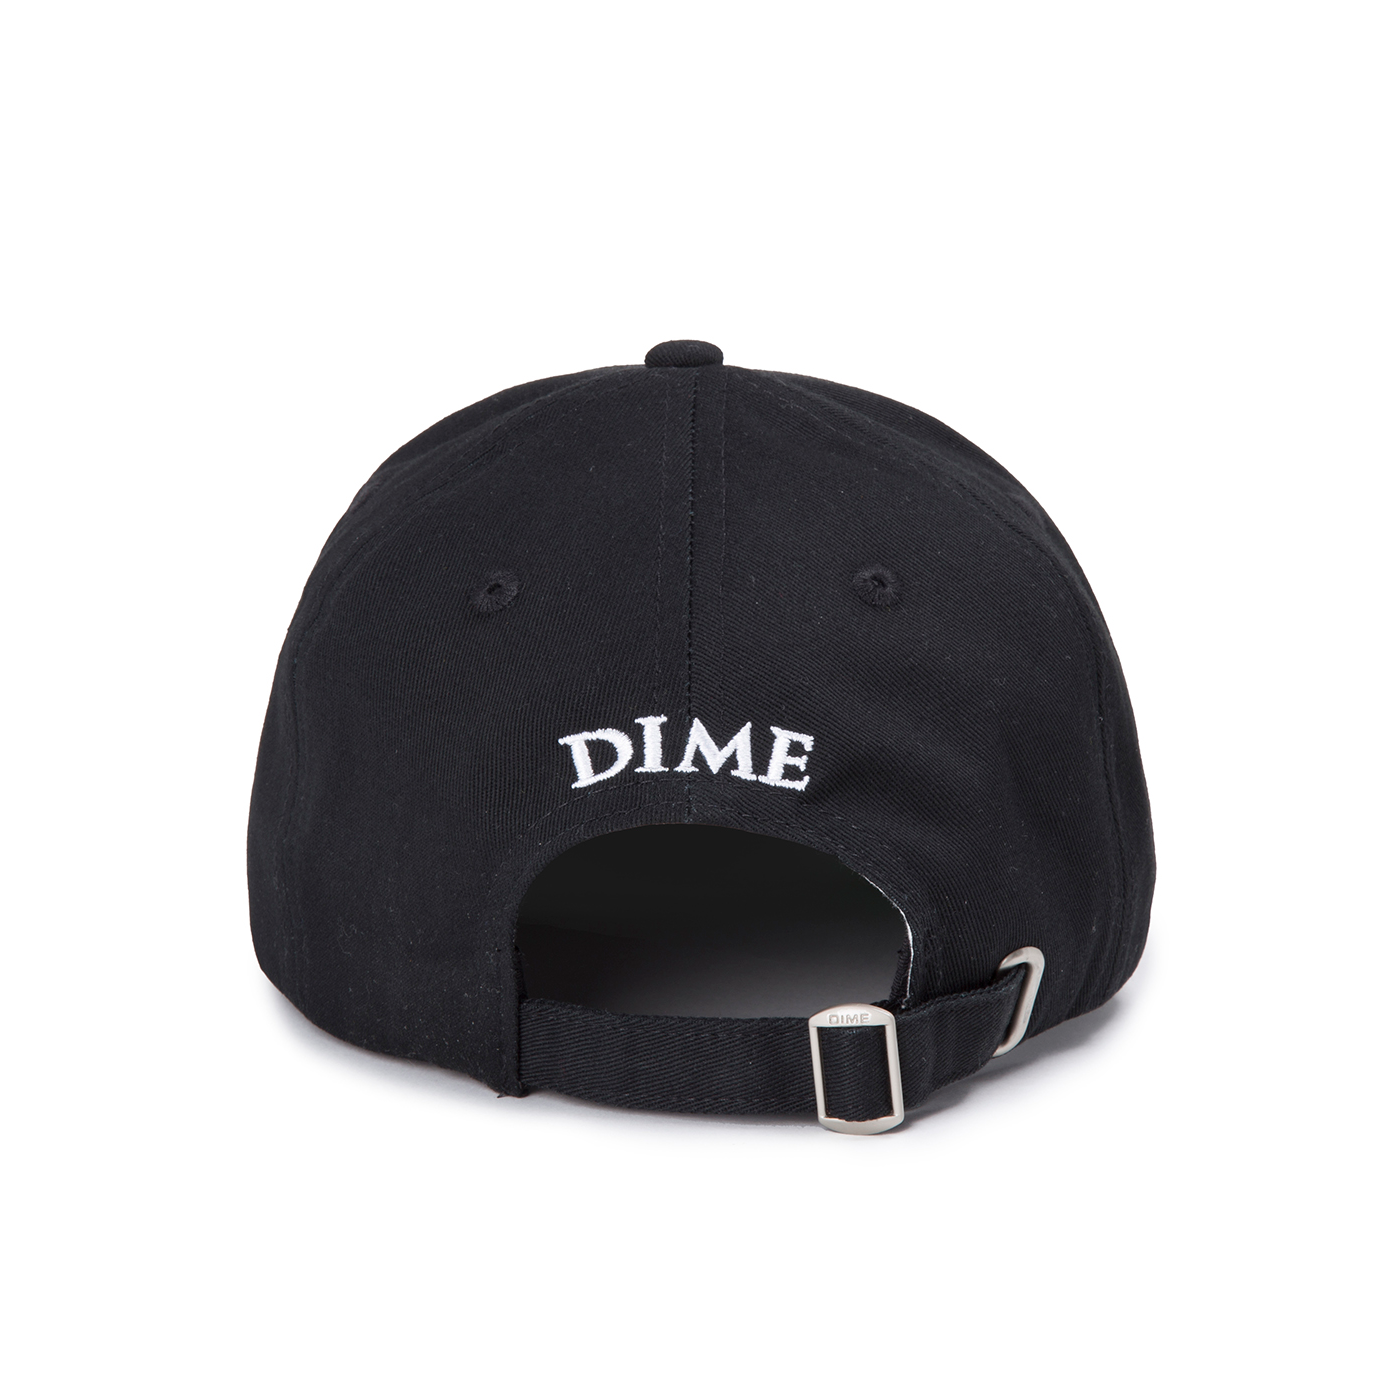 Dime Montreal Cap Product Photo #3